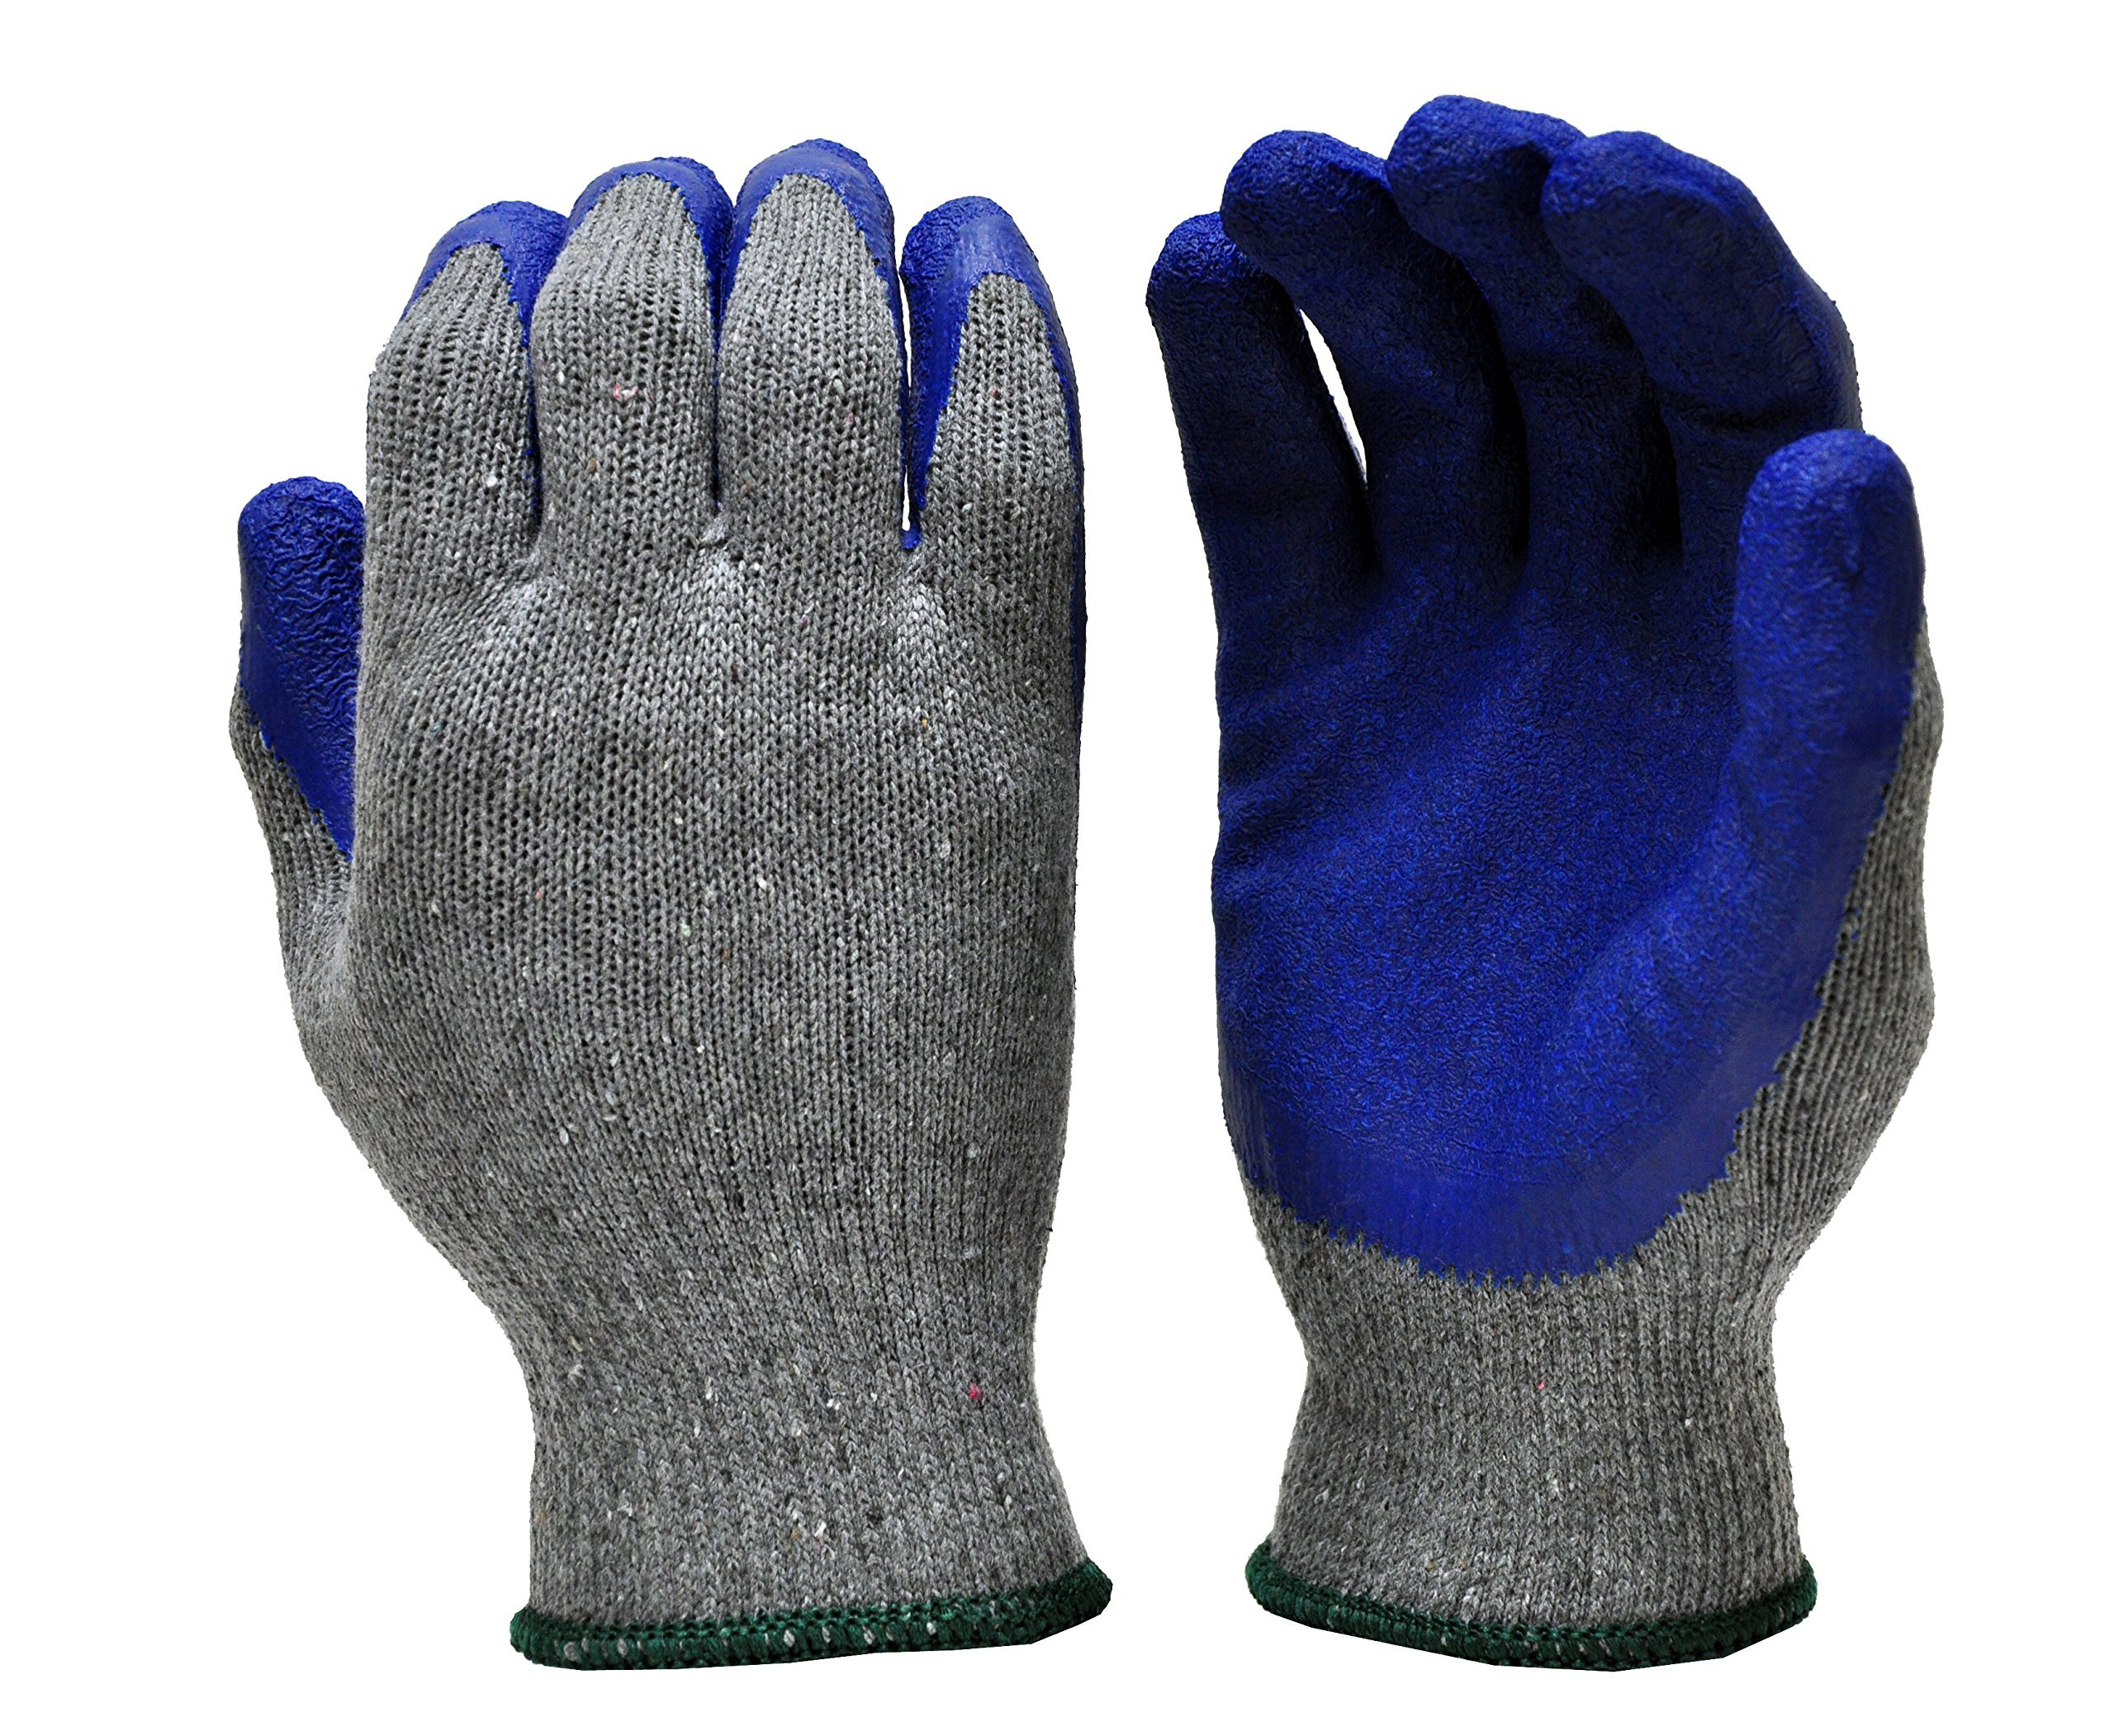 G & F 3100 Knit Glove with Textured Latex Coating Gripping Gloves, 12-Pairs, Large, Sold By Dozen 1